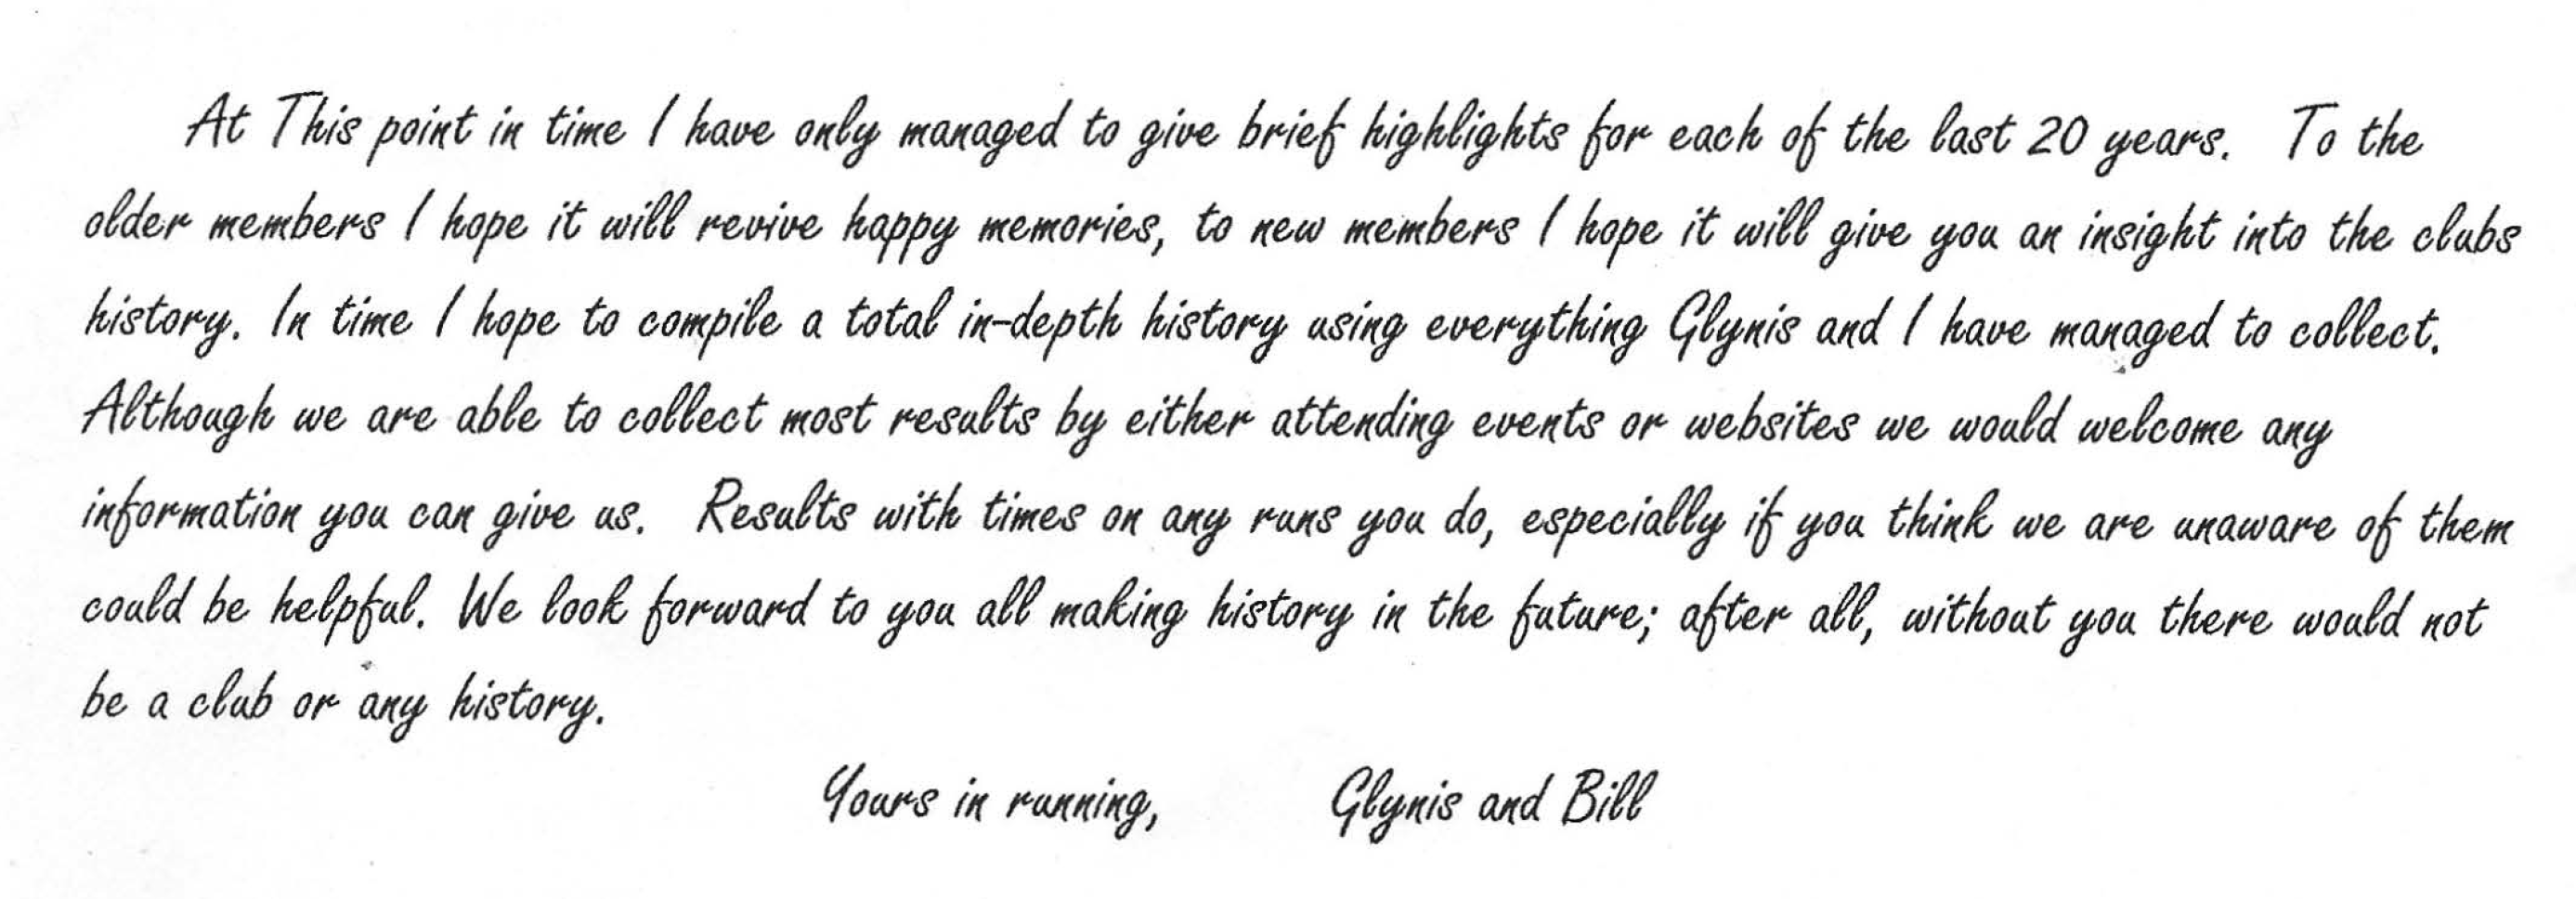 20th Anniversary Message